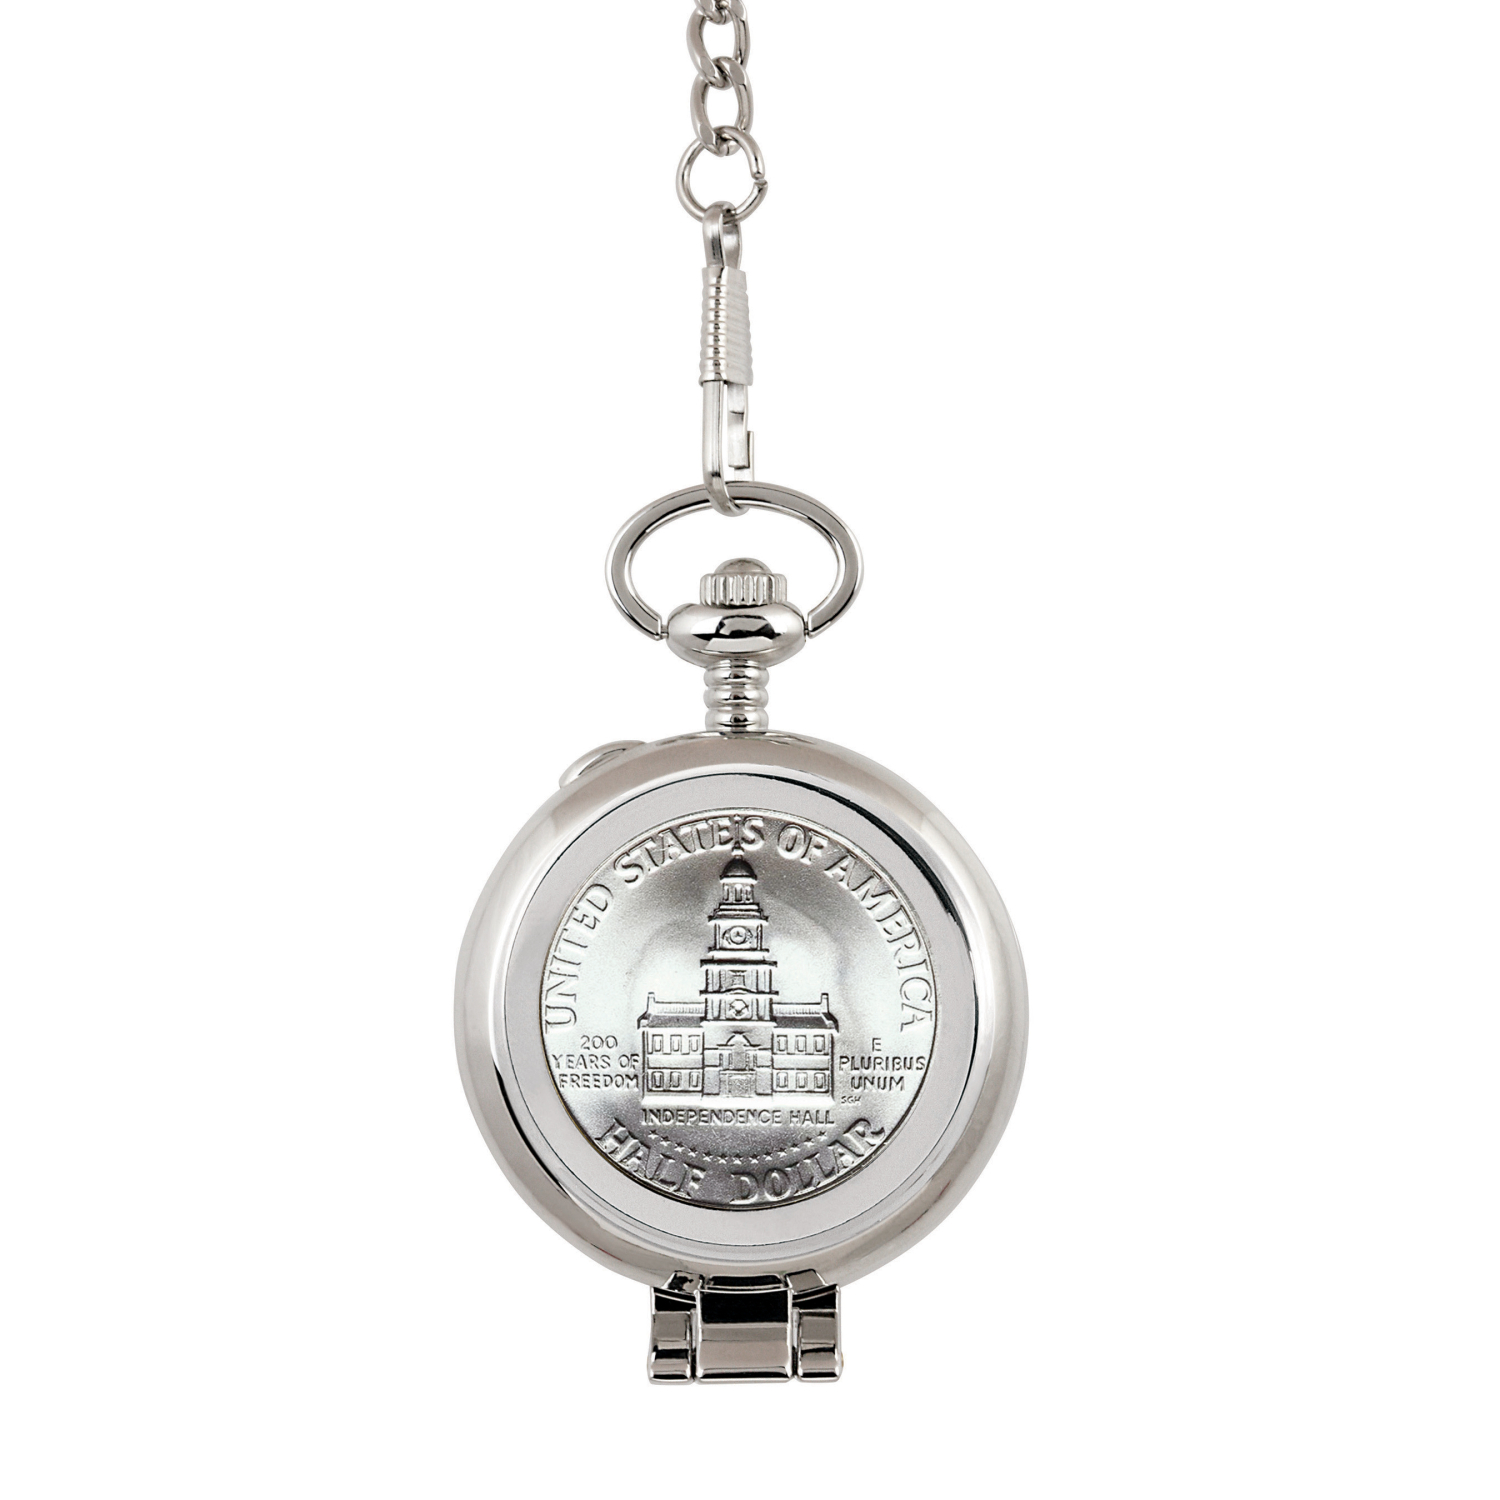 Jfk Bicentennial Half Dollar Coin Pocket Watch With Skeleton Movement - Black Dial With Gold Roman Numerals